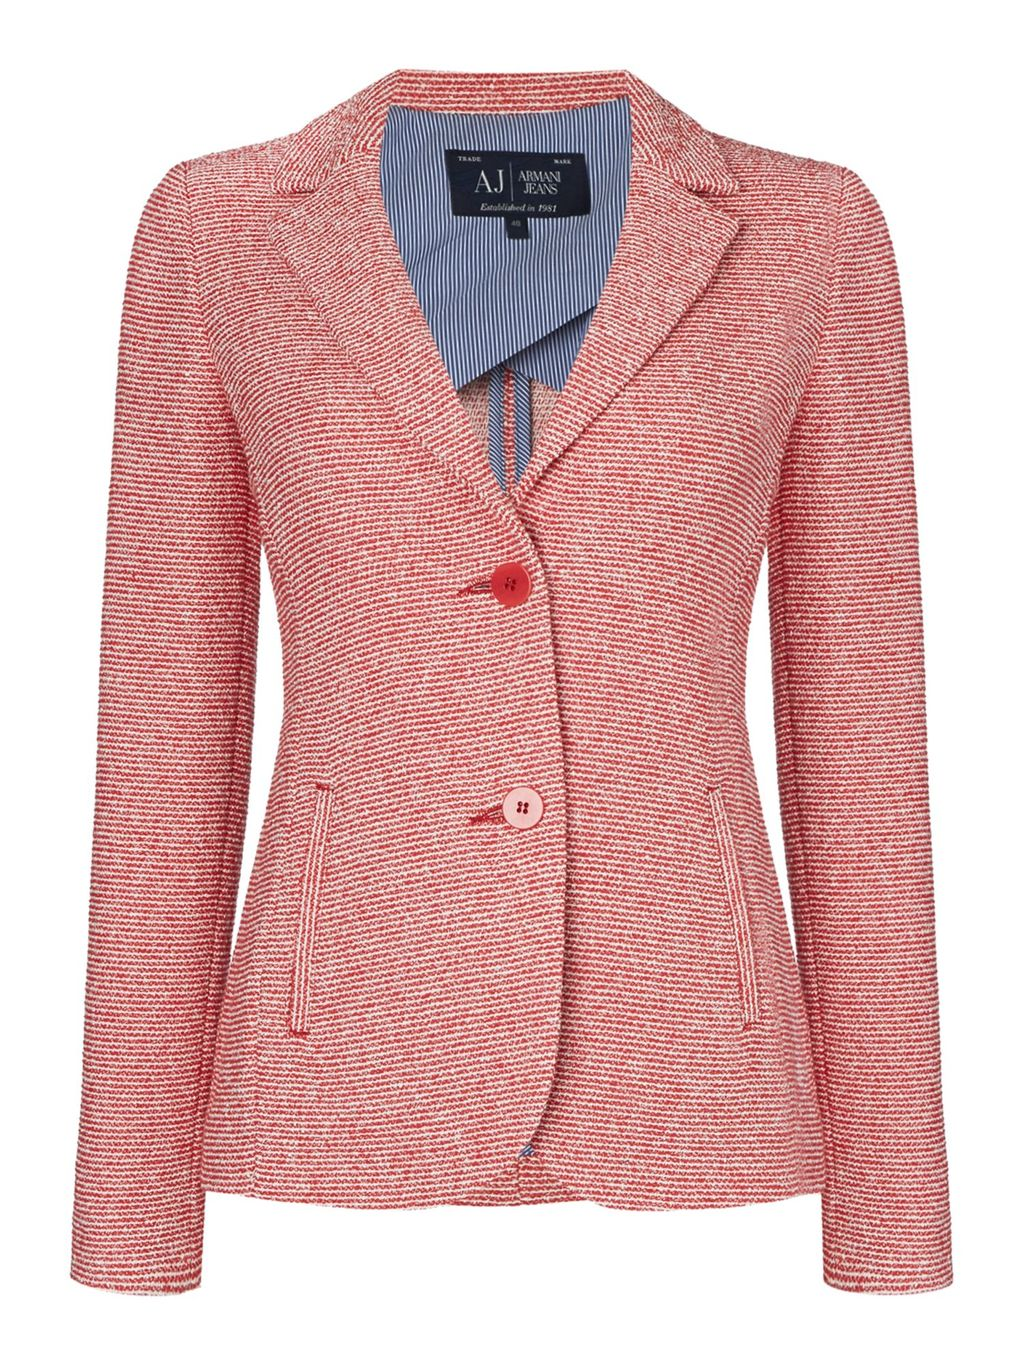 Single Breasted Tweed Blazer, Red - style: single breasted blazer; collar: standard lapel/rever collar; pattern: herringbone/tweed; predominant colour: pink; occasions: evening, work; length: standard; fit: tailored/fitted; fibres: cotton - mix; sleeve length: long sleeve; sleeve style: standard; collar break: medium; pattern type: fabric; pattern size: light/subtle; texture group: tweed - light/midweight; season: s/s 2016; wardrobe: investment